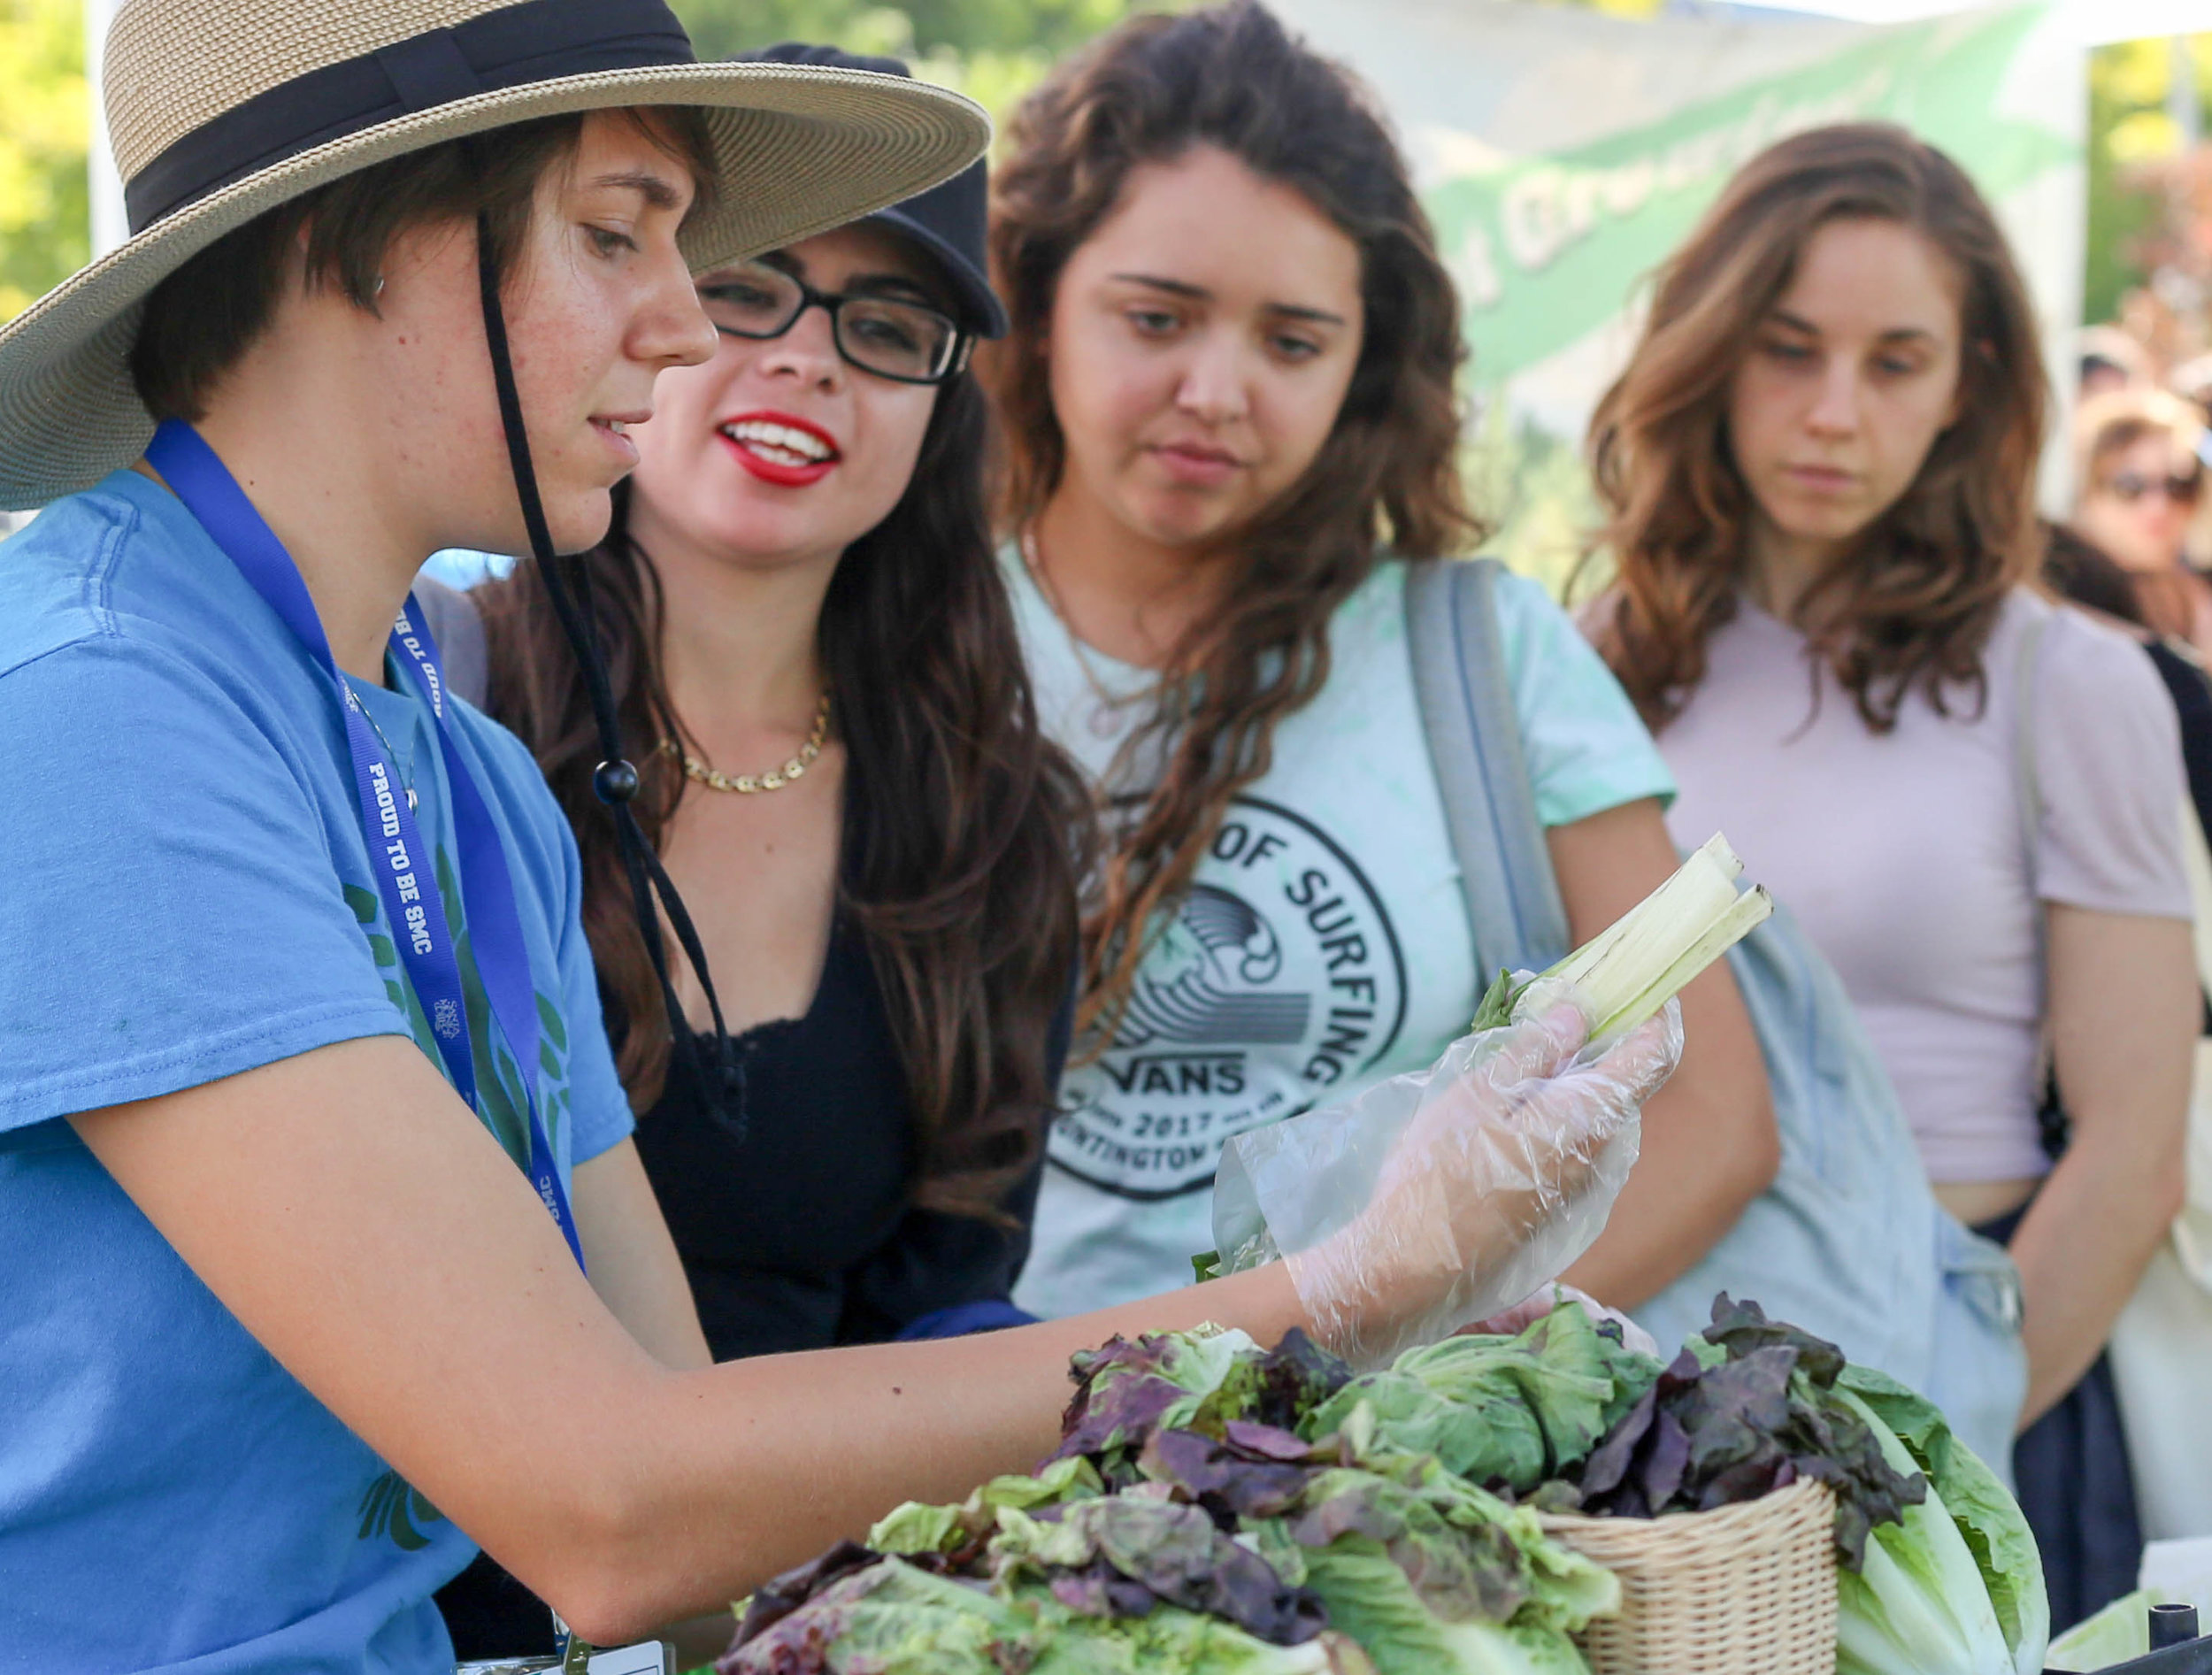 Student Assistant with Santa Monica College's Associated Students Ana Laura Paiva picks out a leak for an SMC student near the Organic Learning Garden at Santa Monica College's Main Campus in Santa Monica, Calif on Monday, October 16th 2017. (Photo by: Thane Fernandes)